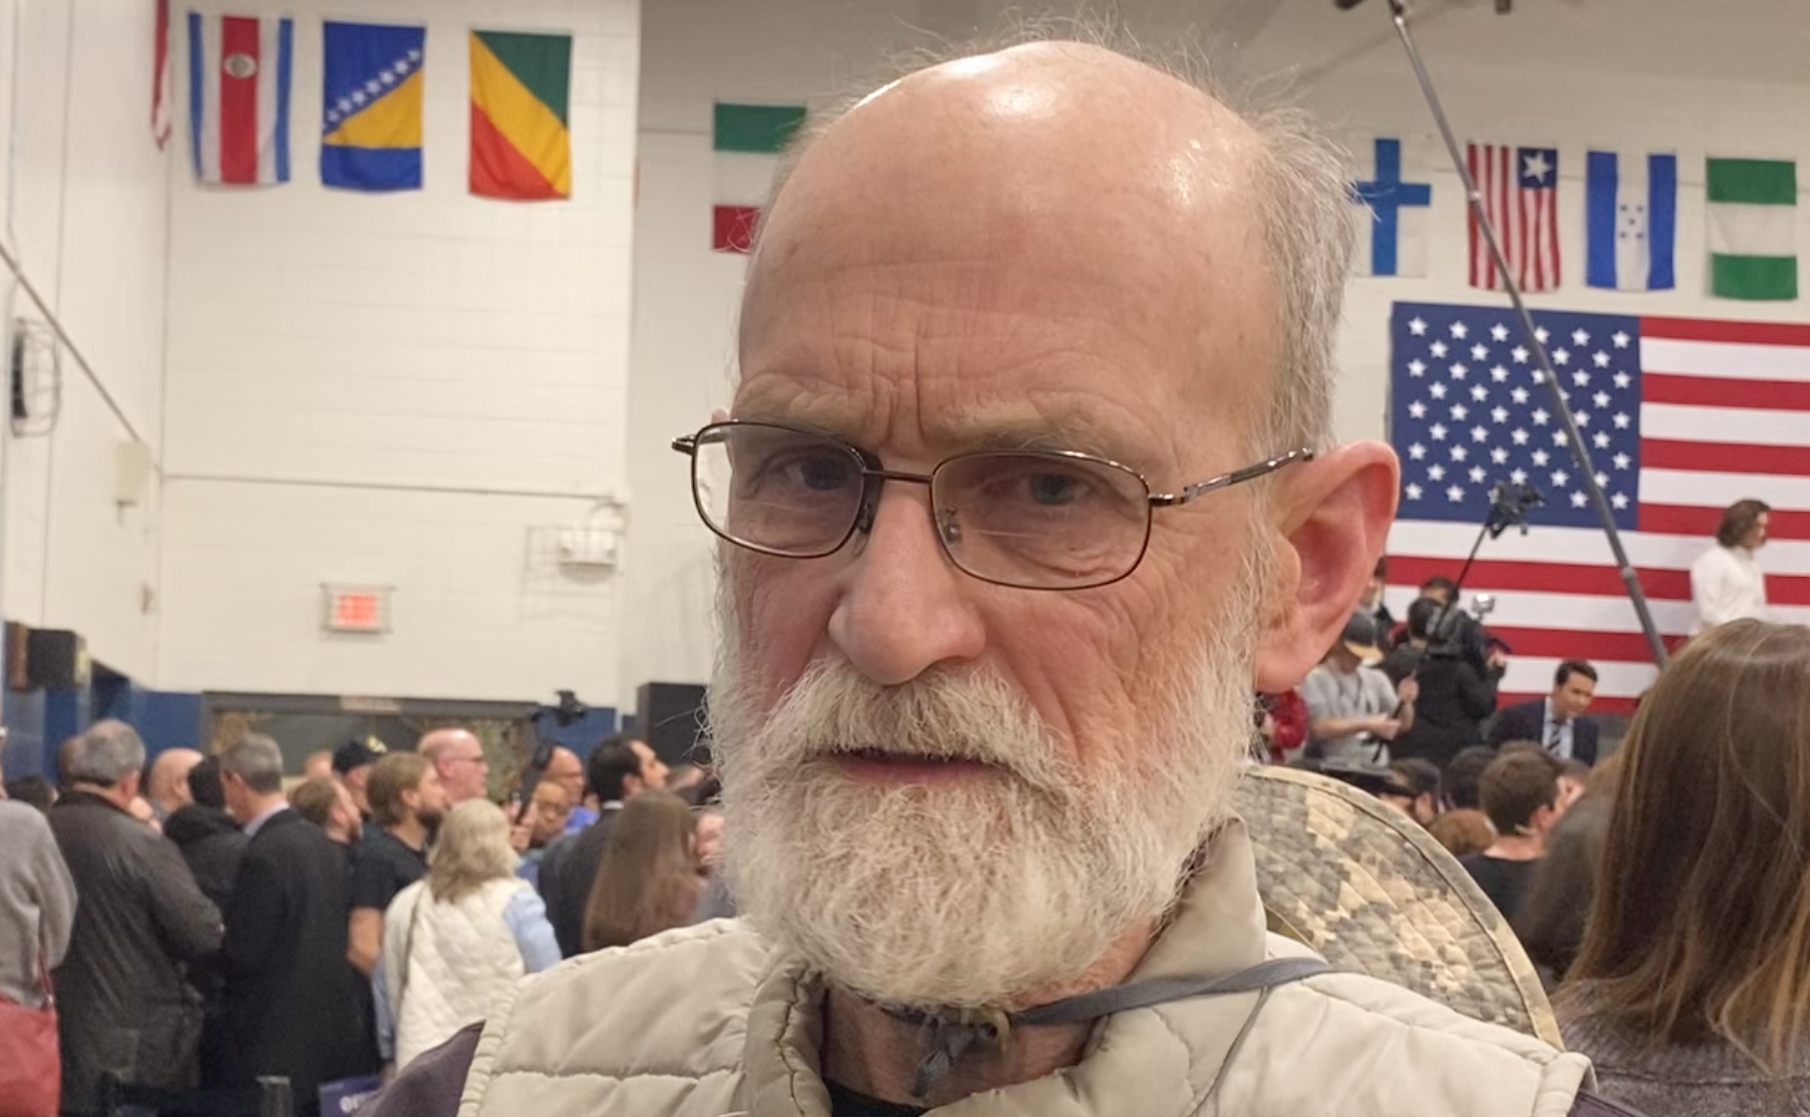 James A. Benzoni, an immigration attorney who supports Joe Biden, at a rally in Des Moines, Iowa, February 2nd 2020.